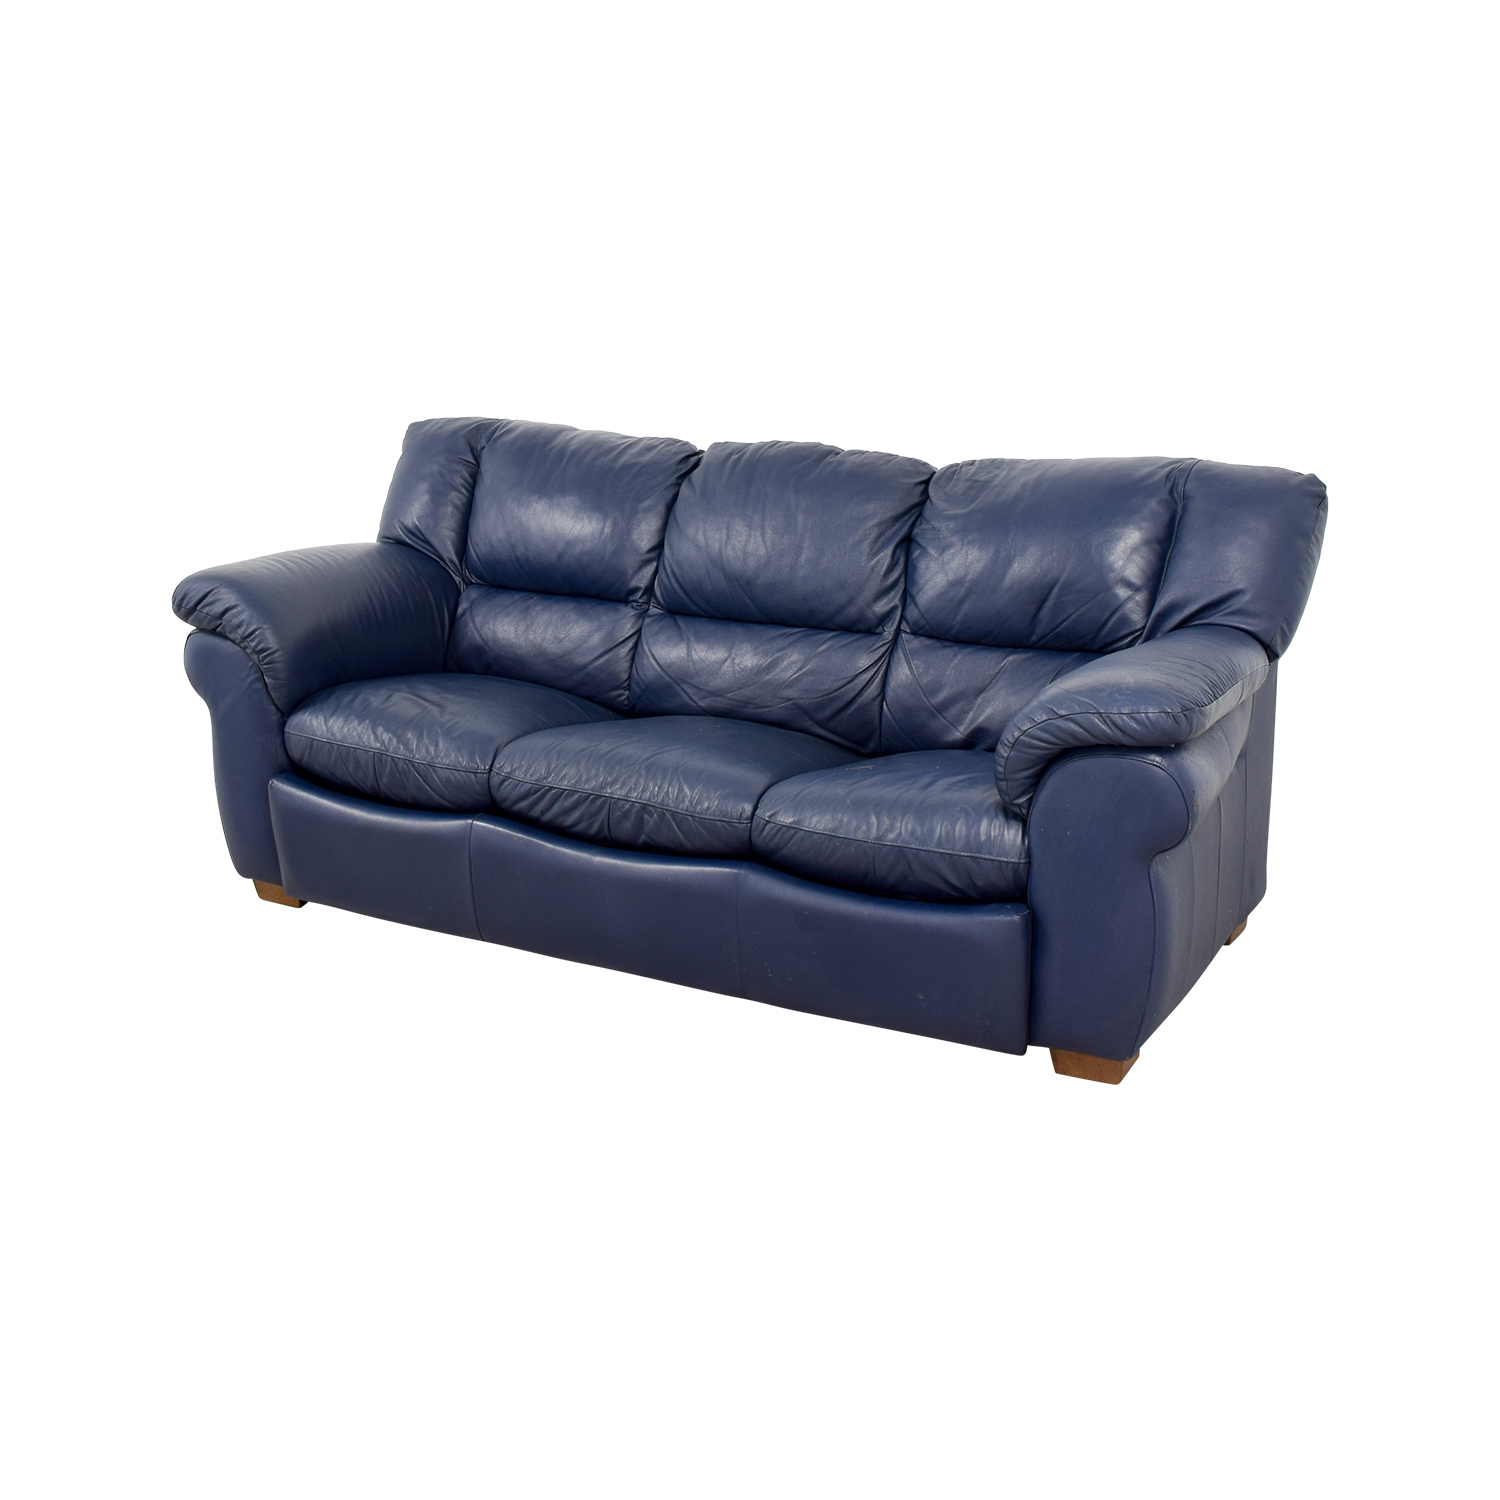 86 Off Macy S Macy S Navy Blue Leather Three Cushion